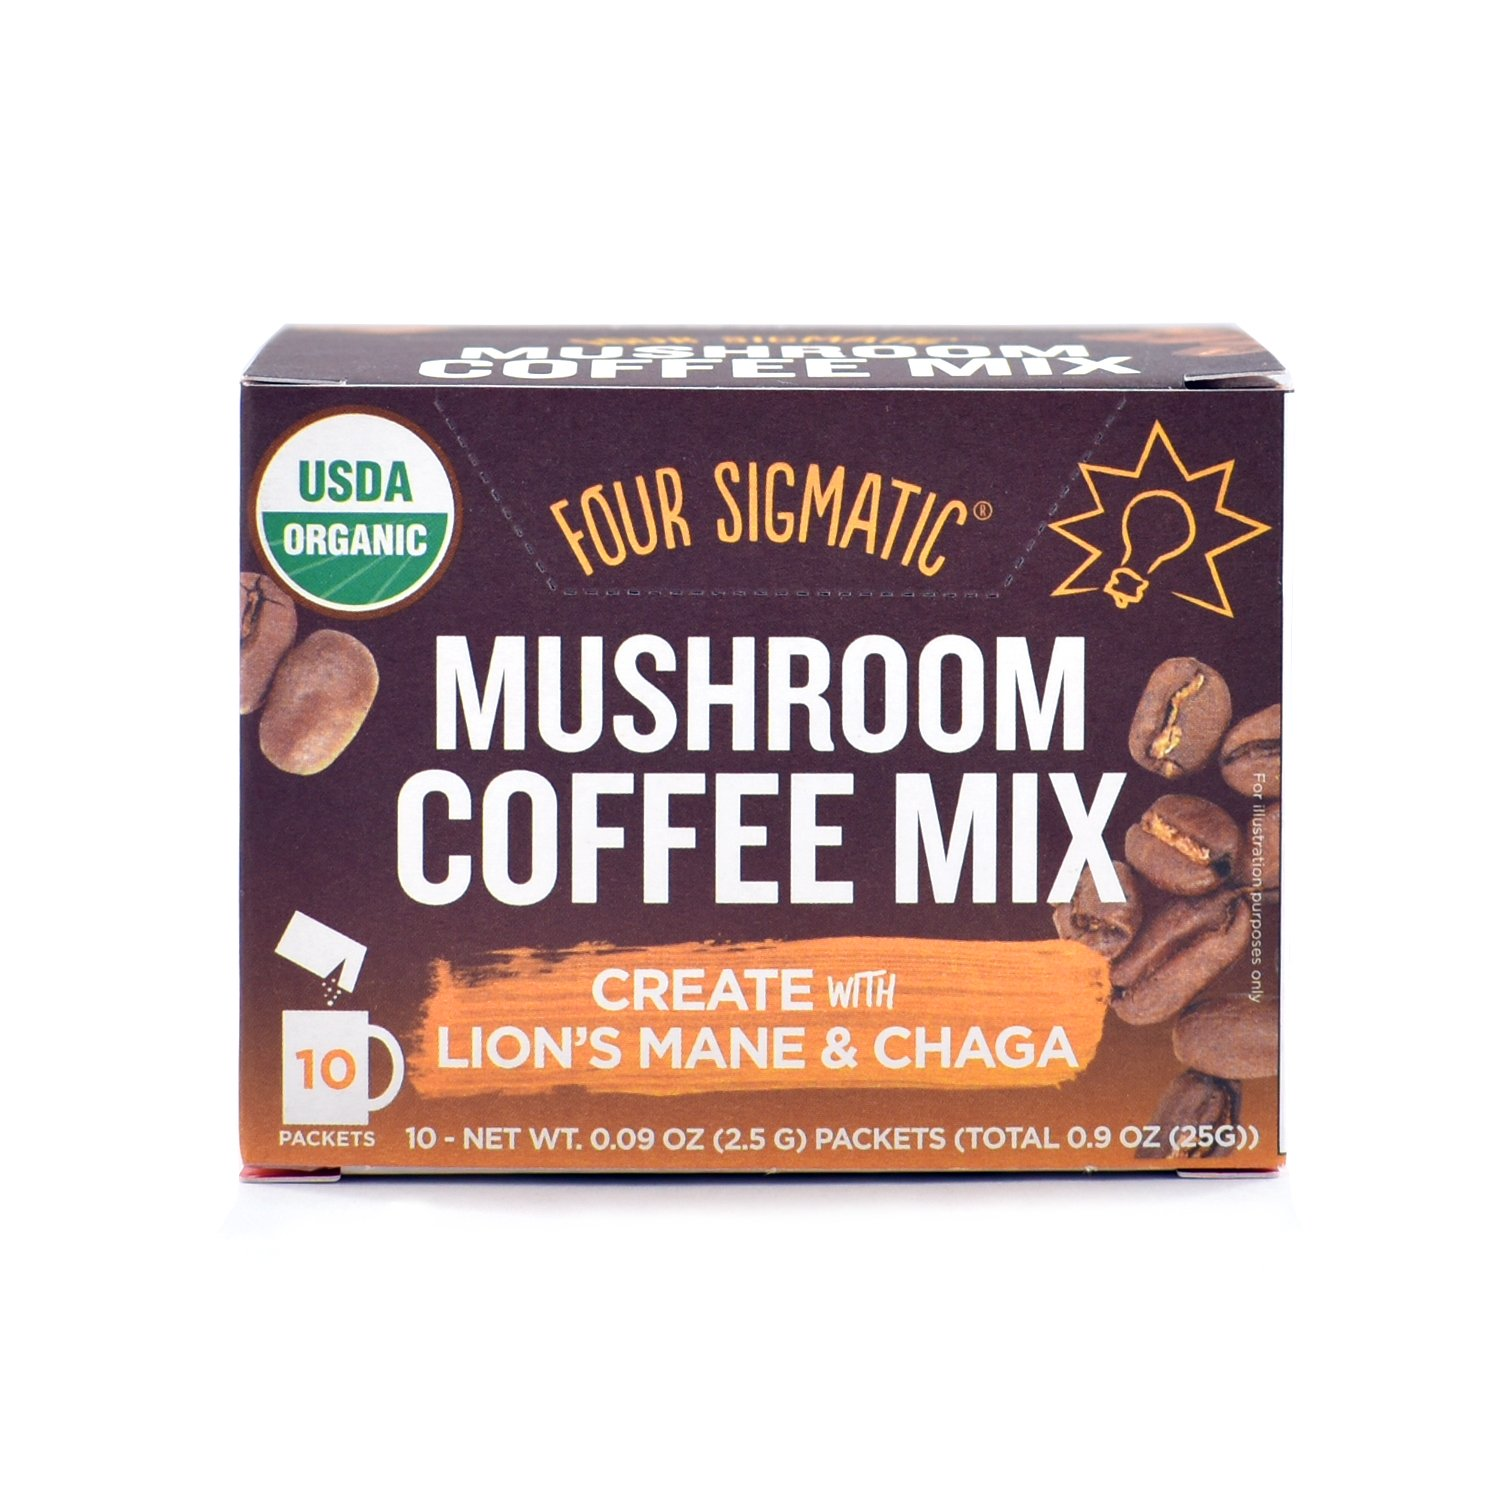 Four Sigmatic Mushroom Coffee Mix Pack of 2 - Lion's Mane and Chaga & Cordyceps and Chaga by Four Sigmatic (Image #2)